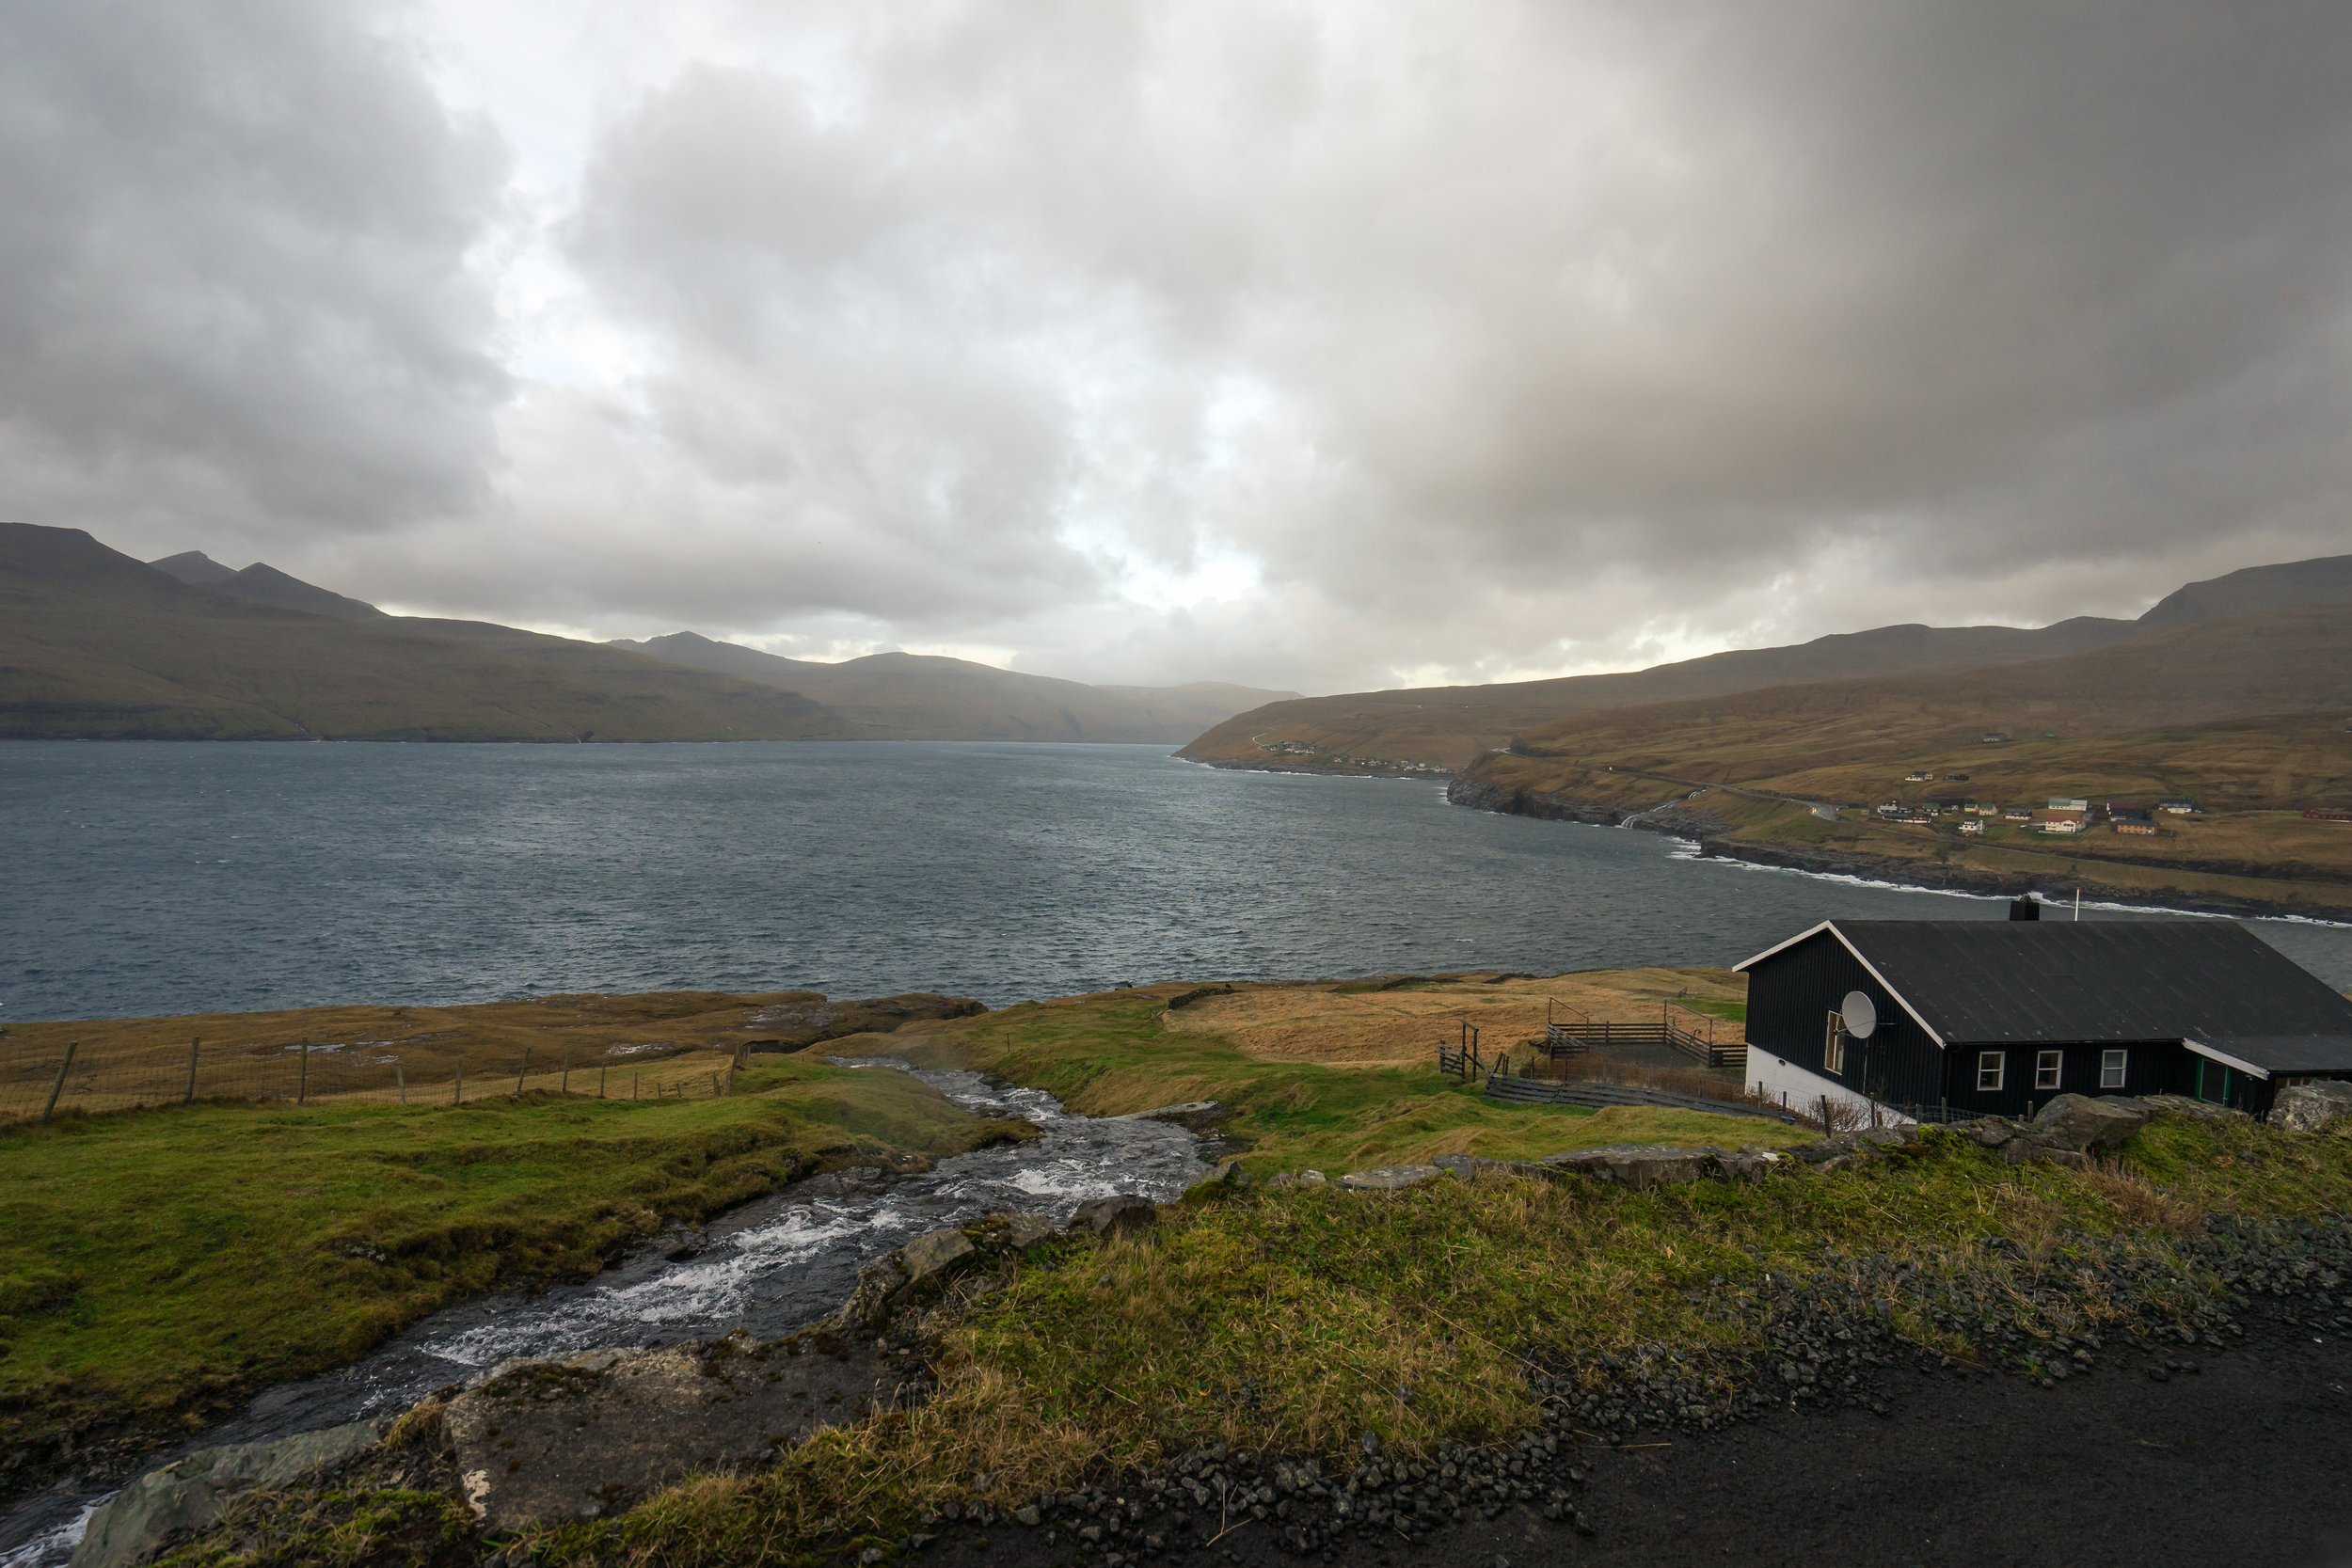 Storm Clouds approach in the Faroe Islands